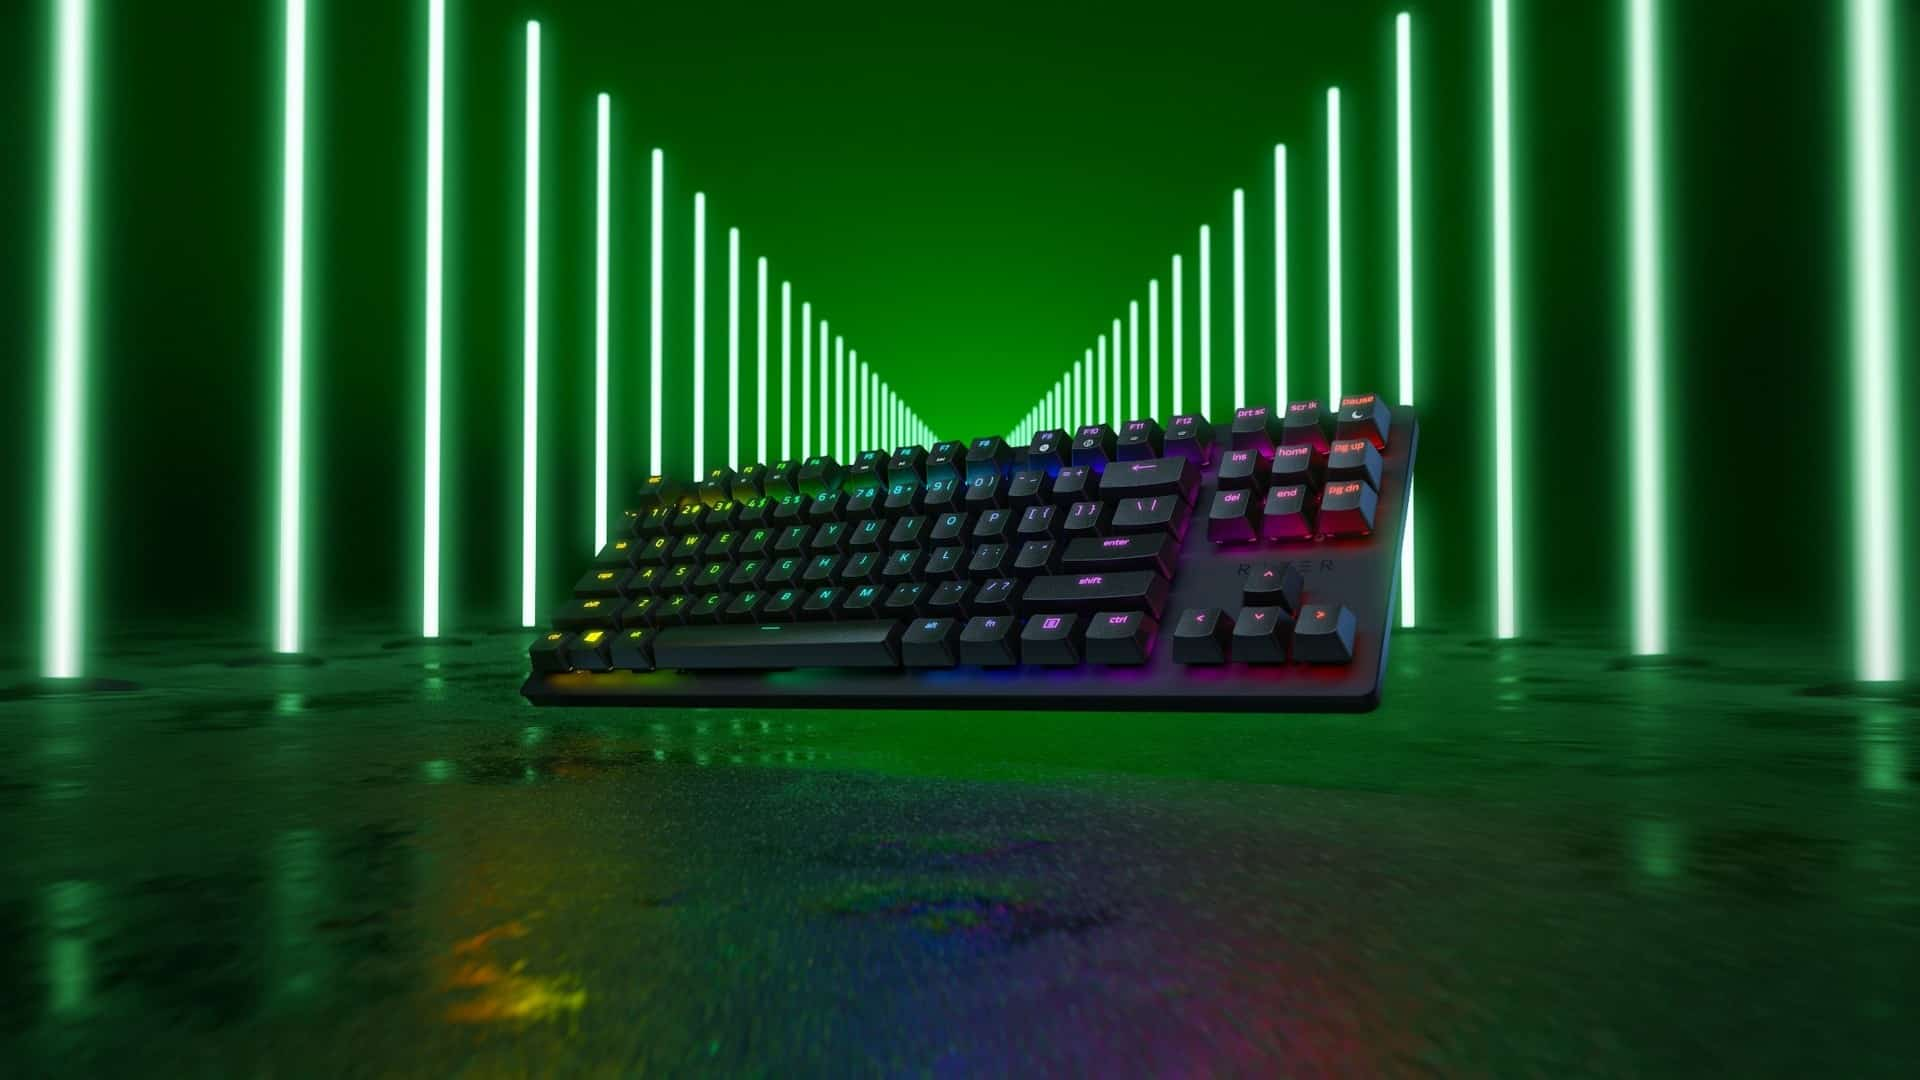 Compete At The Speed Of Light With The Razer Huntsman Tournament Edition